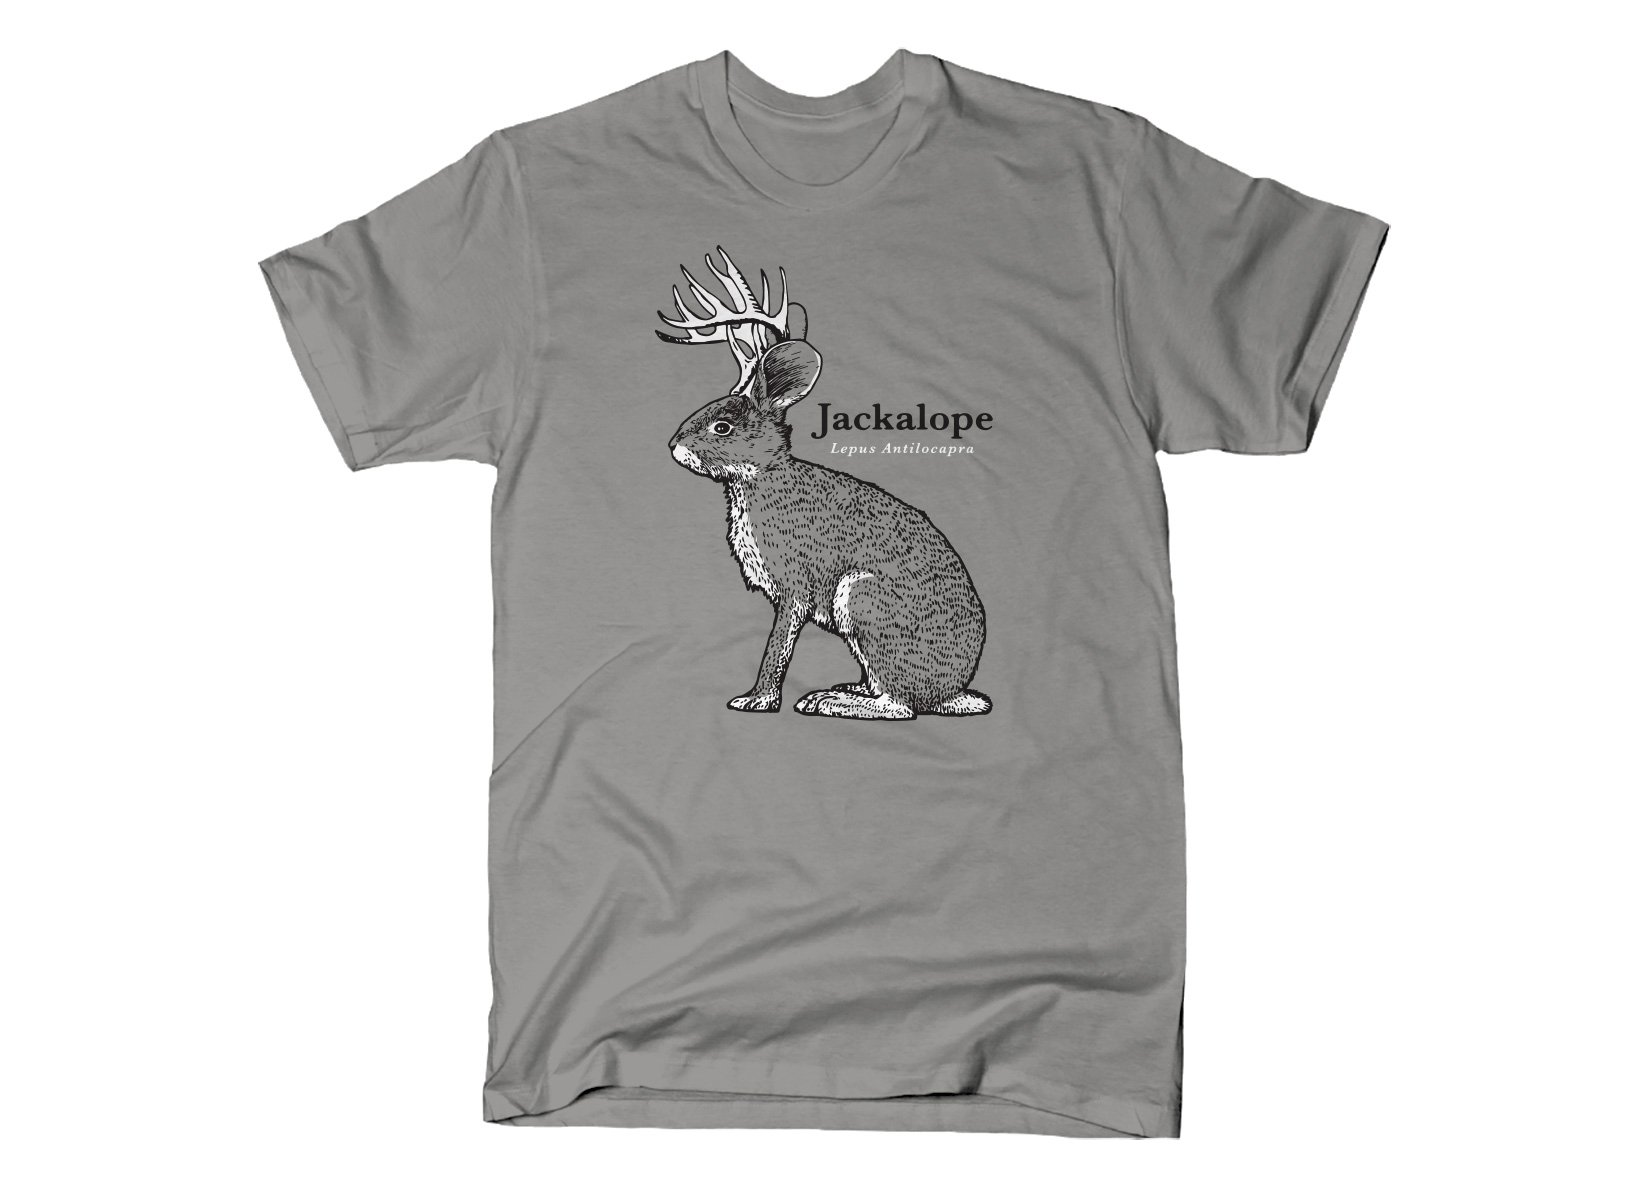 Jackalope on Mens T-Shirt